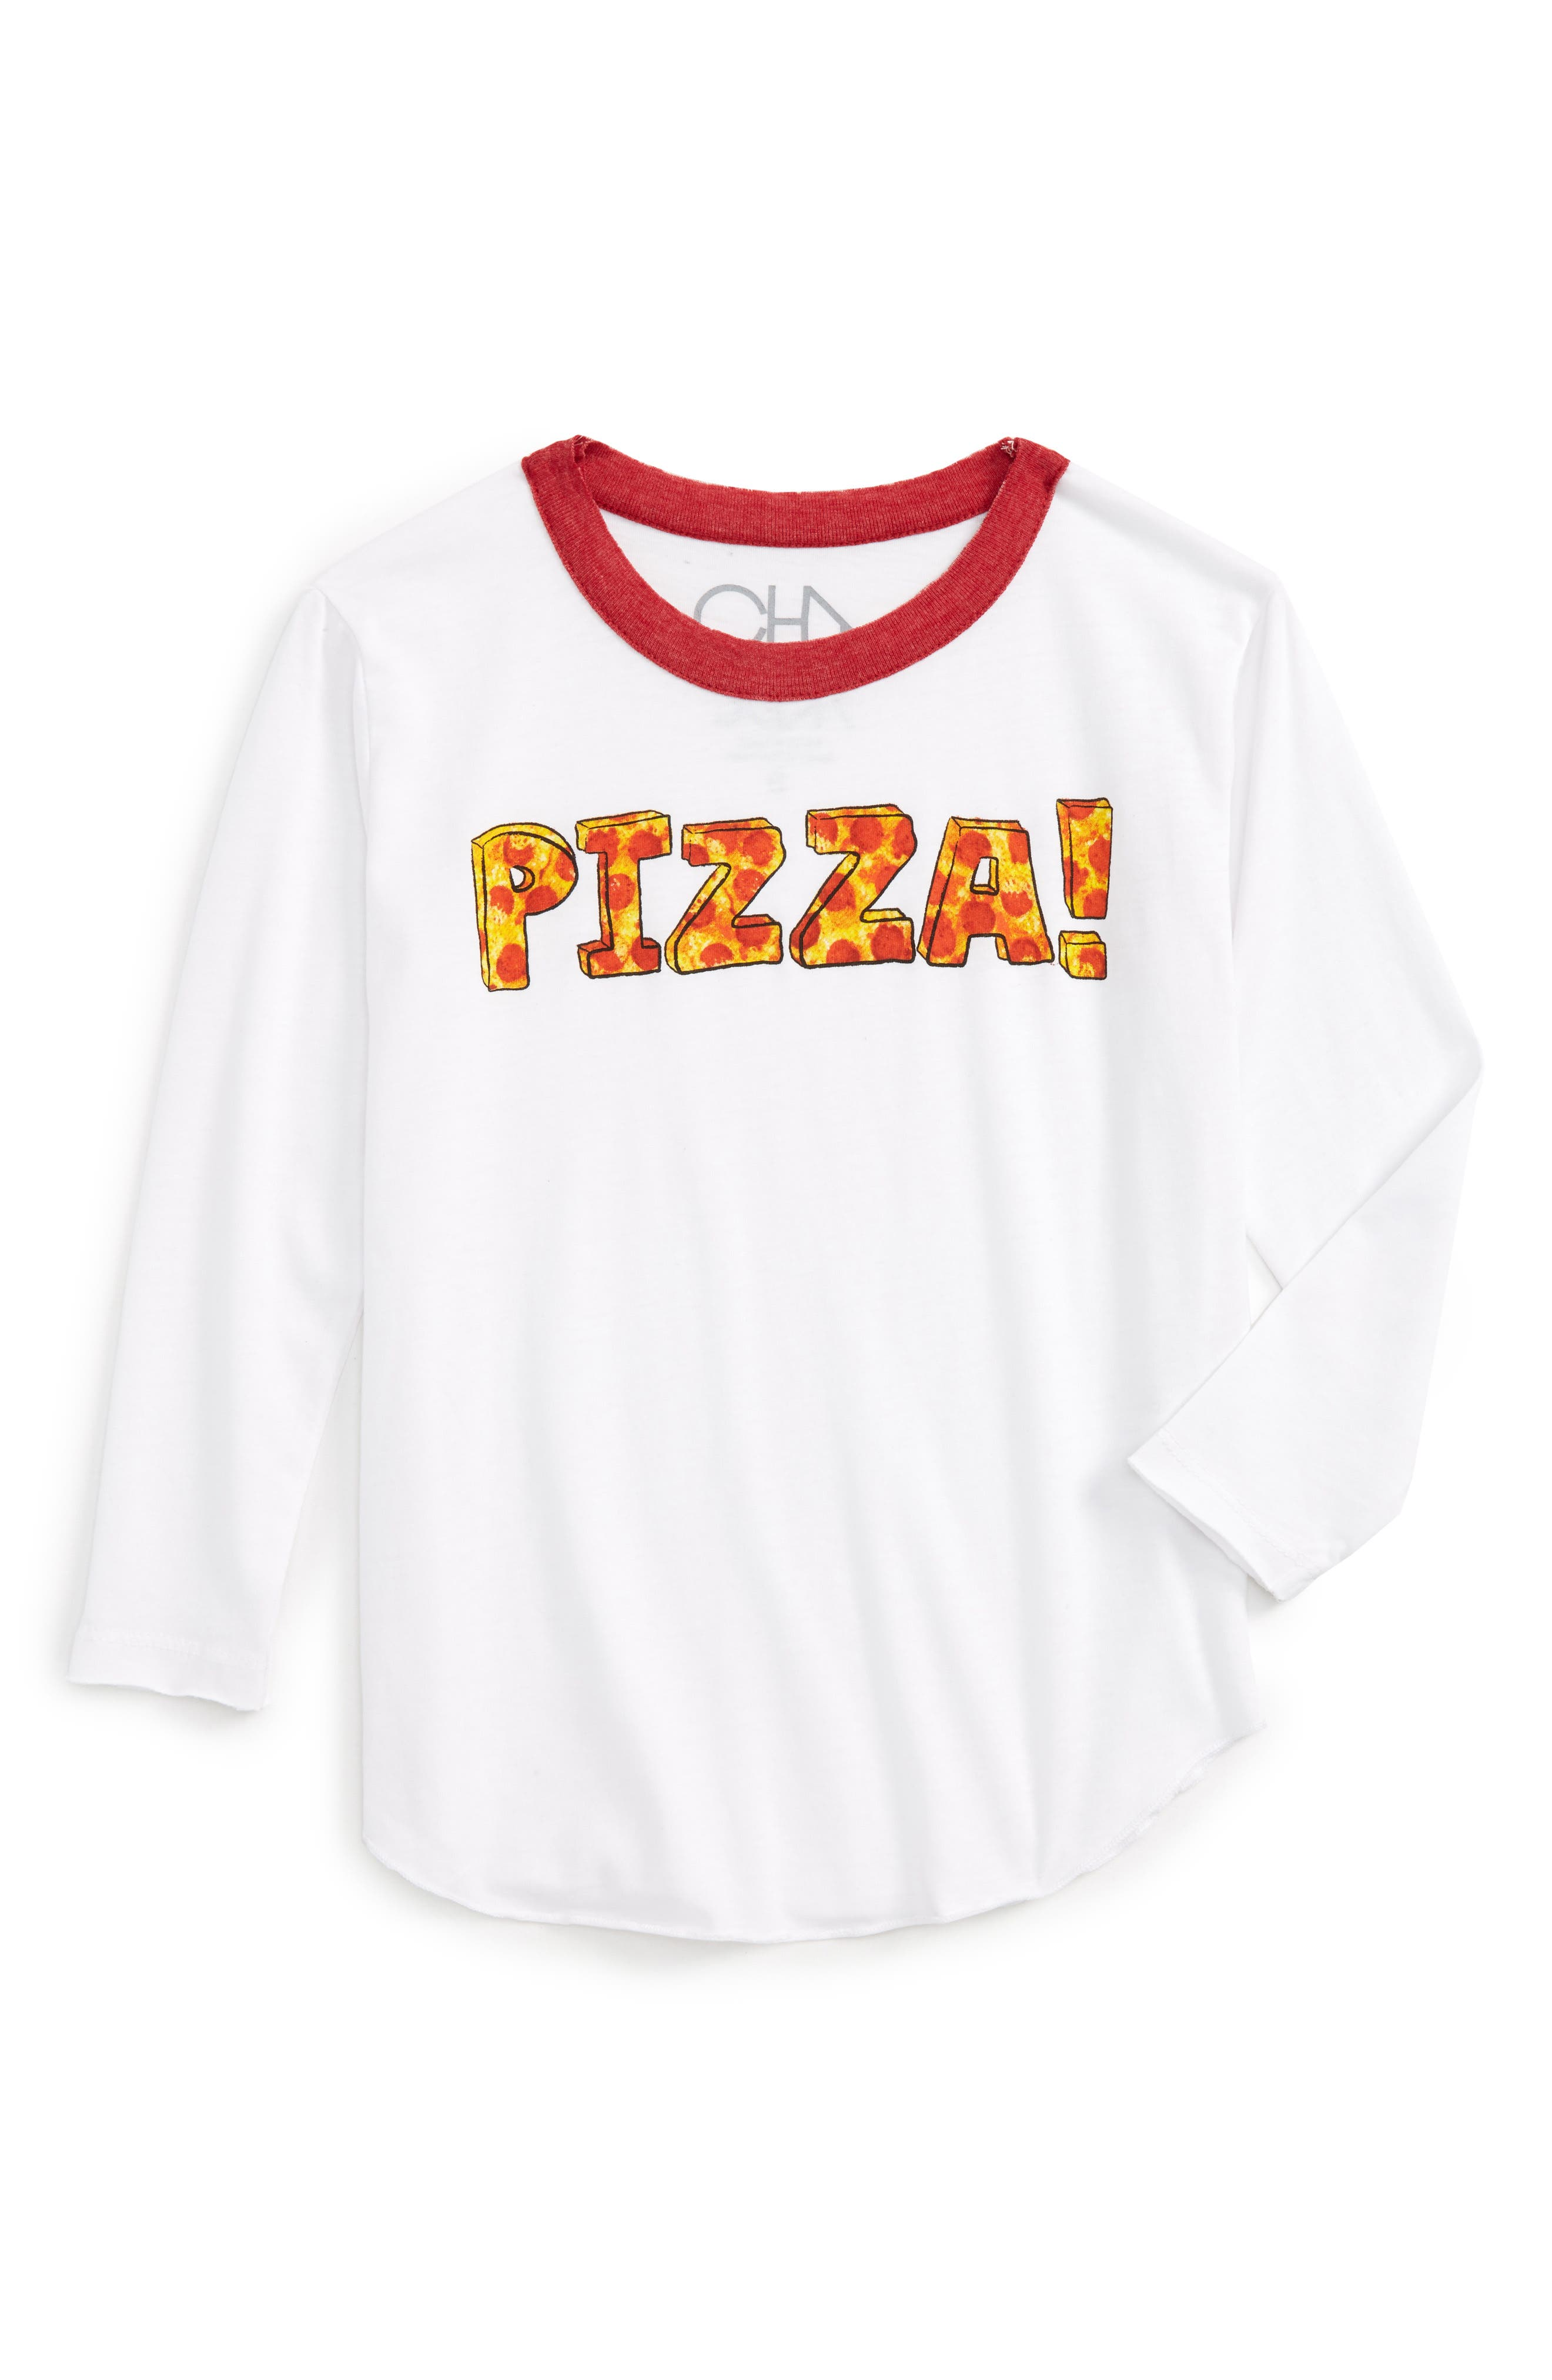 Main Image - Chaser Pizza Time Graphic Tee (Toddler Girls & Little Girls)